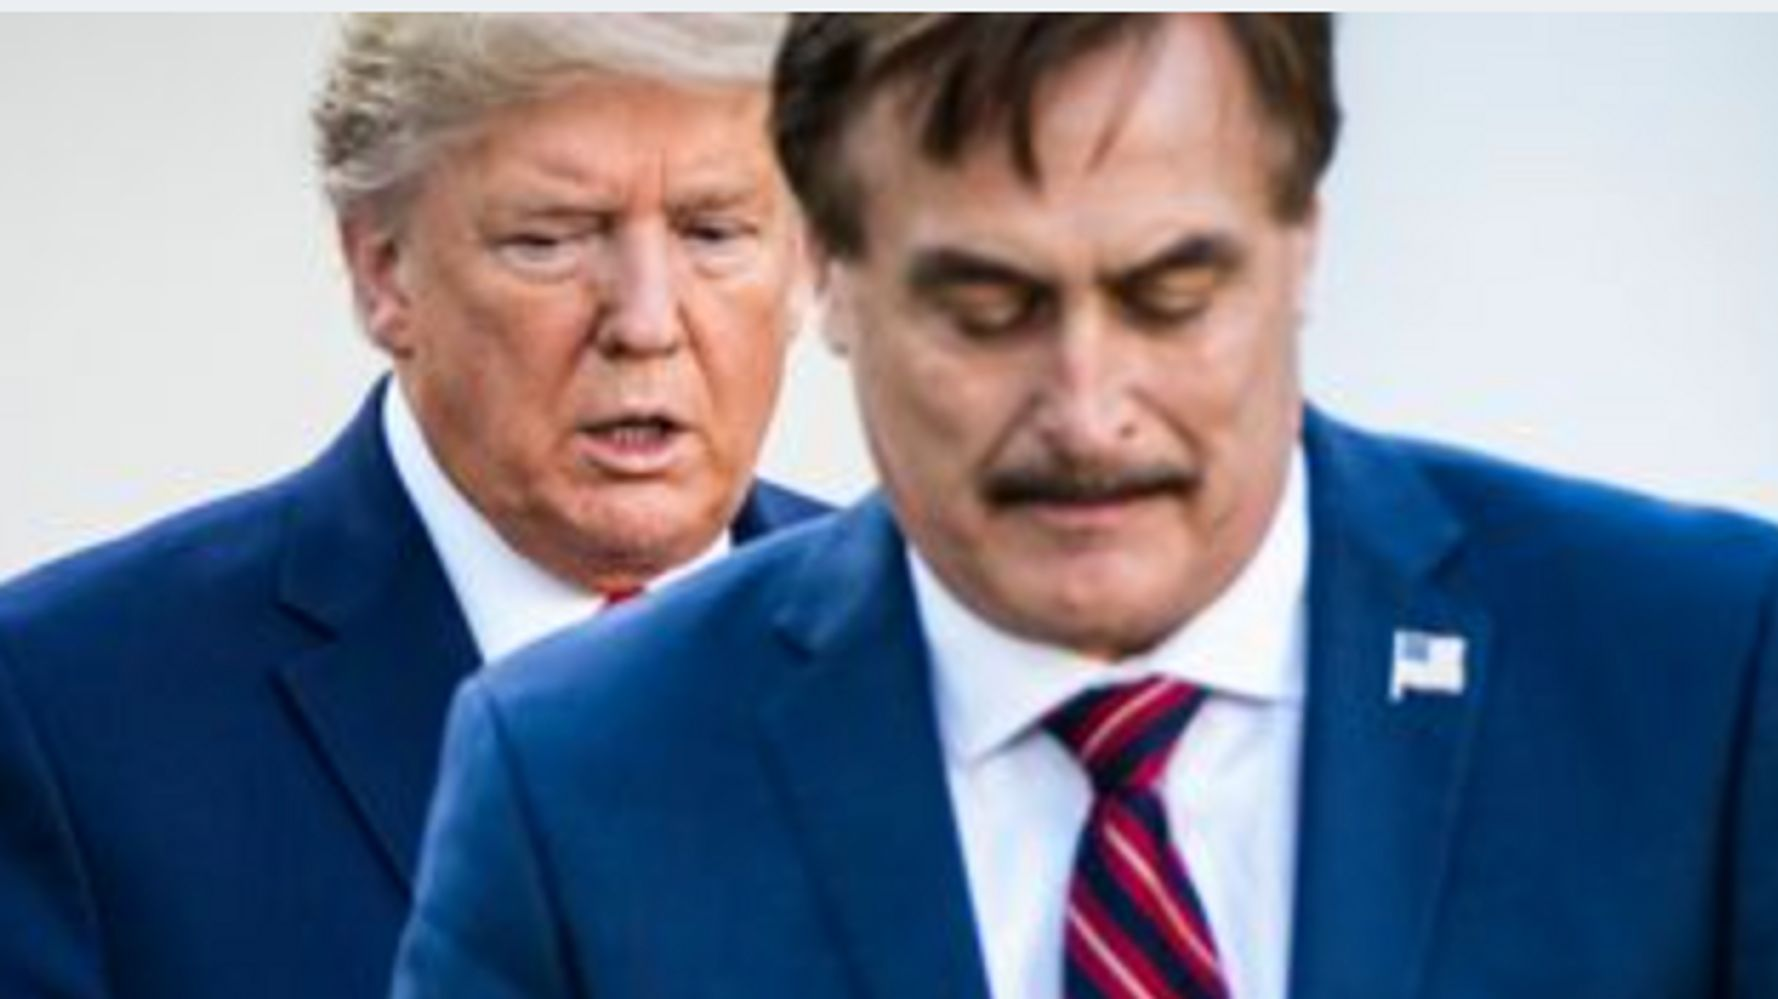 Mypillow Guy Mike Lindell Shouts Out Unproven Covid 19 Cure To Trump Huffpost